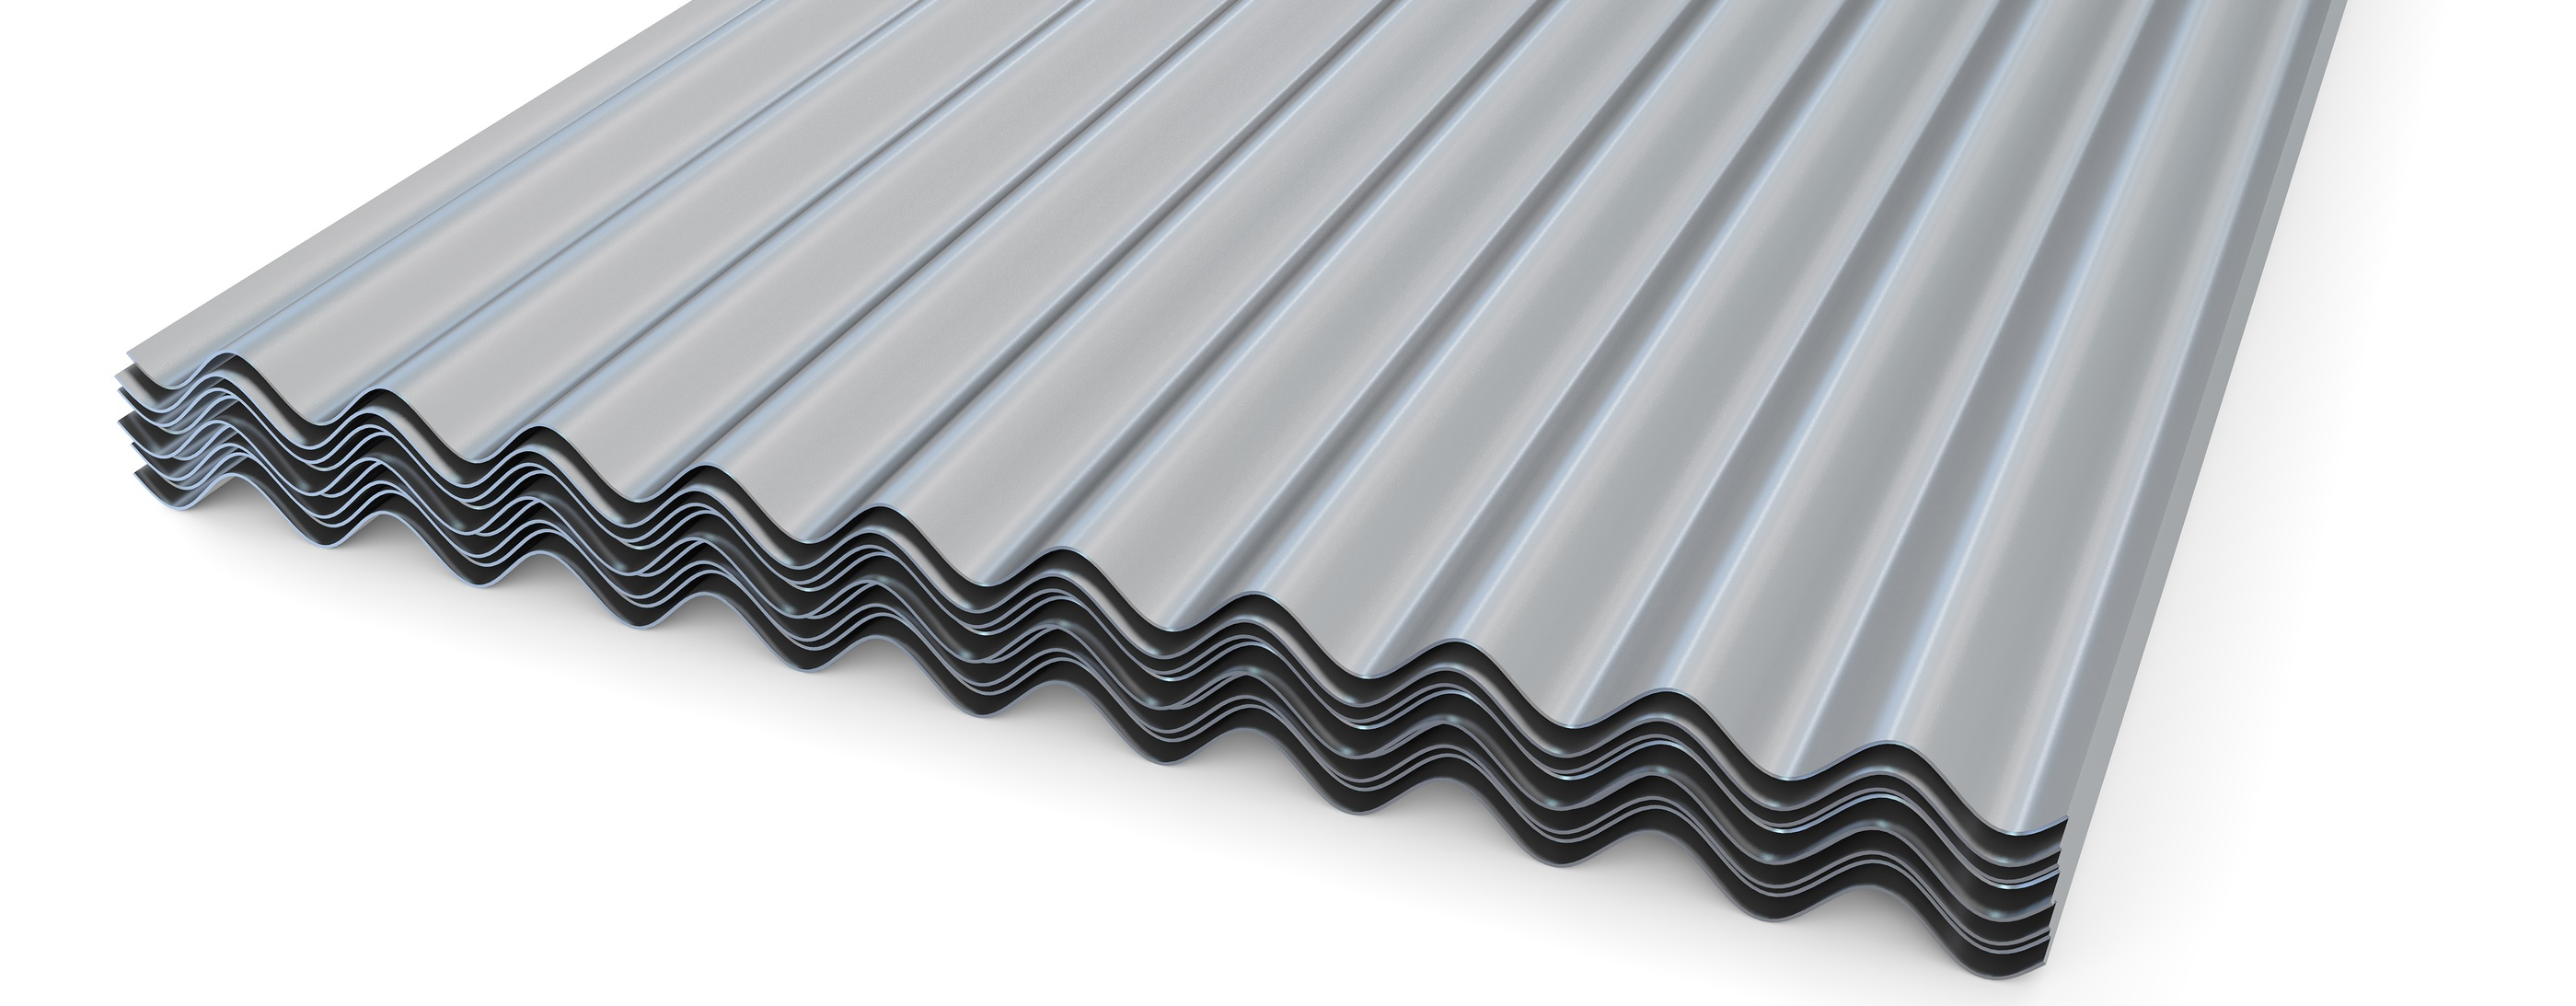 Colorbond Roofing & Metal Roofing Supply - Perth, Western Australia